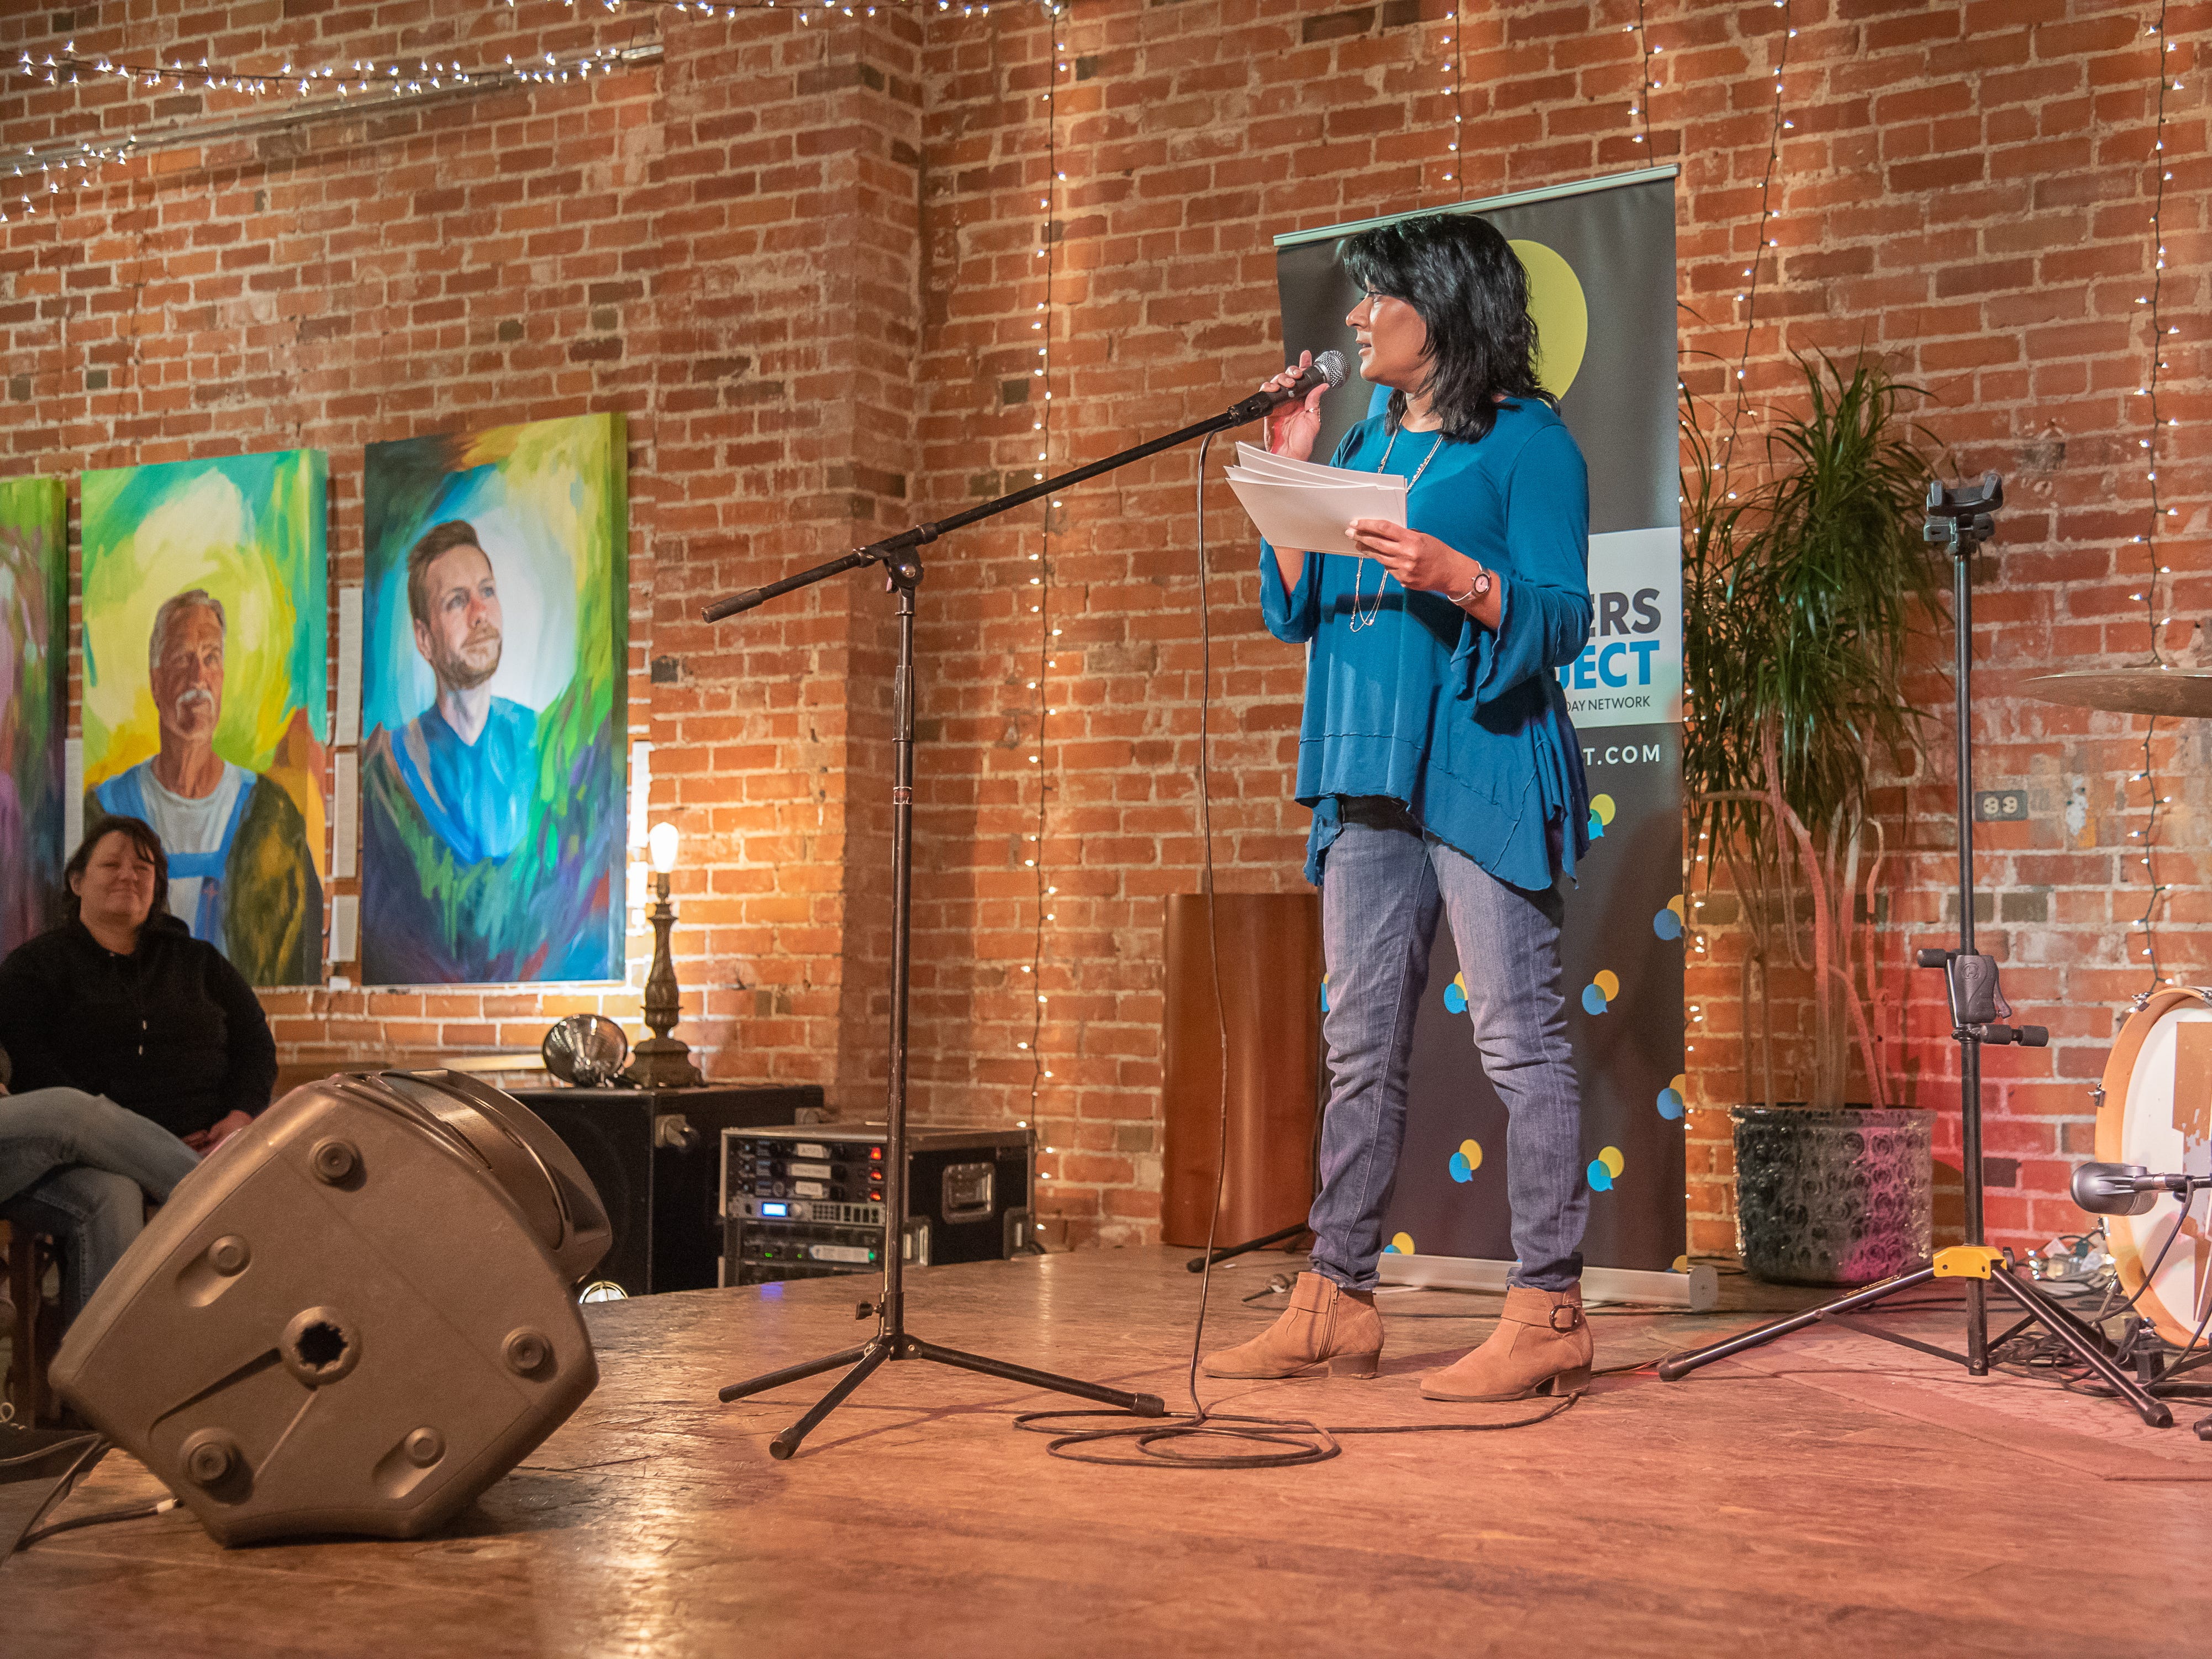 Storyteller Malini Bartles speaks of love and heartbreak during the Coloradoan Storytellers Project at Everyday Joe's Coffee House on Wednesday, February 20, 2019, in Fort Collins, Colo.